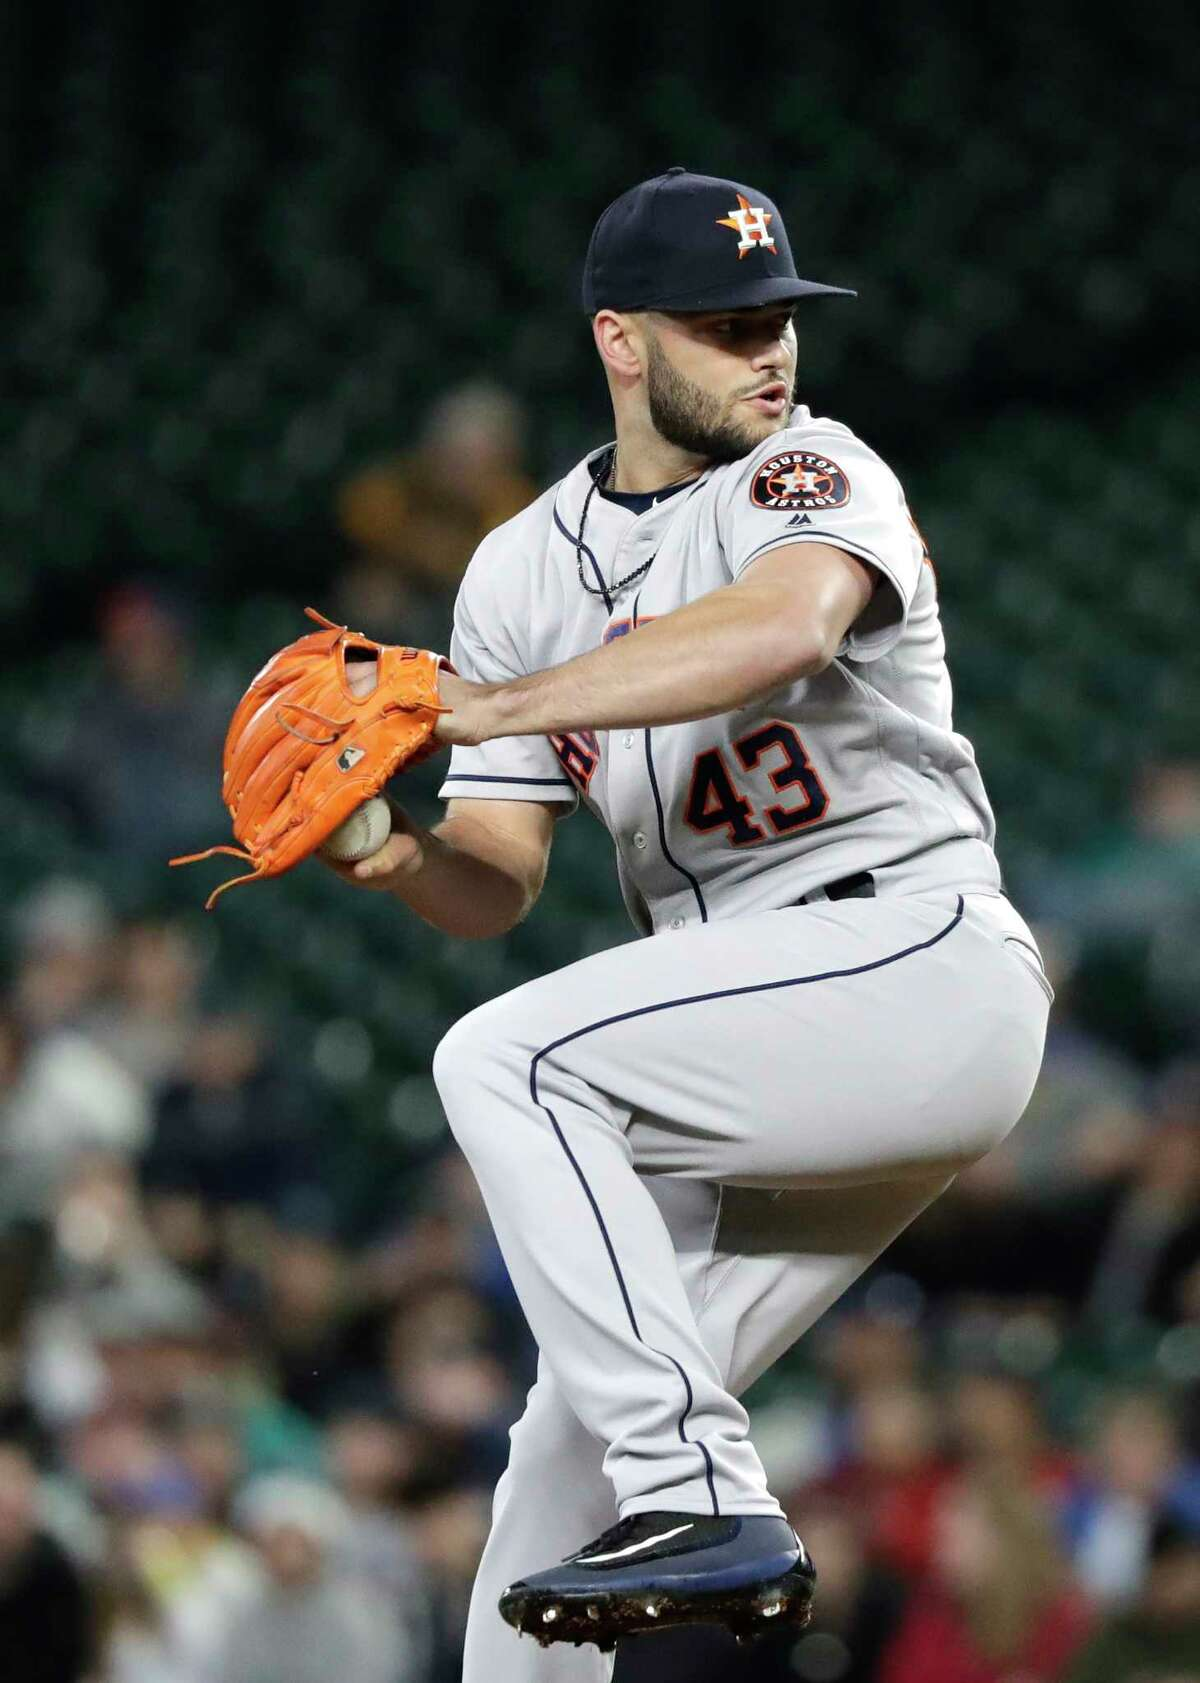 Houston Astros starting pitcher Lance McCullers Jr. throws against the Seattle Mariners in a baseball game Tuesday, April 17, 2018, in Seattle. (AP Photo/Elaine Thompson)